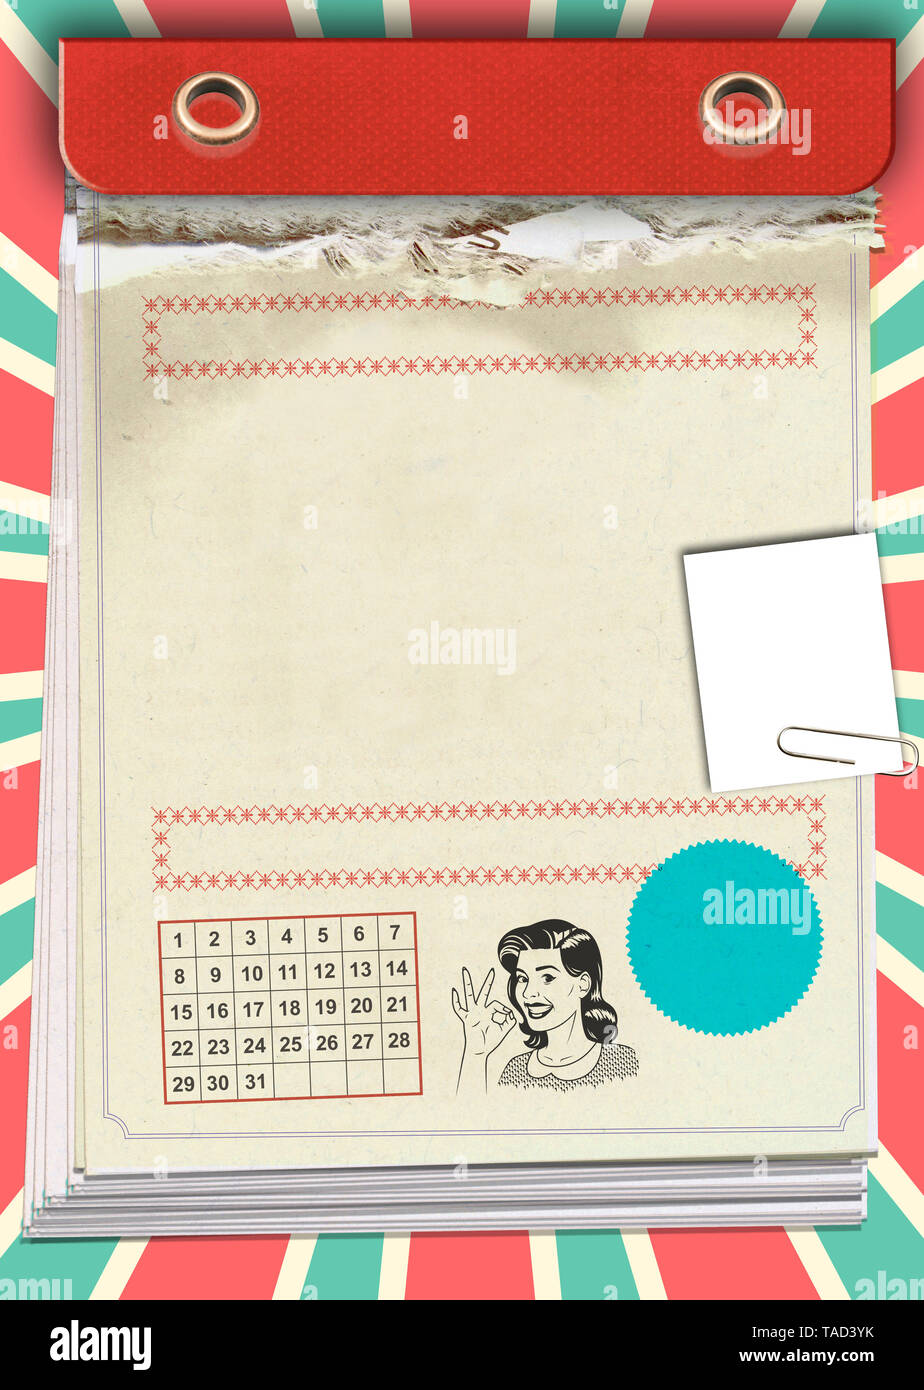 tear-off calendar for filling in a birthday - Stock Image